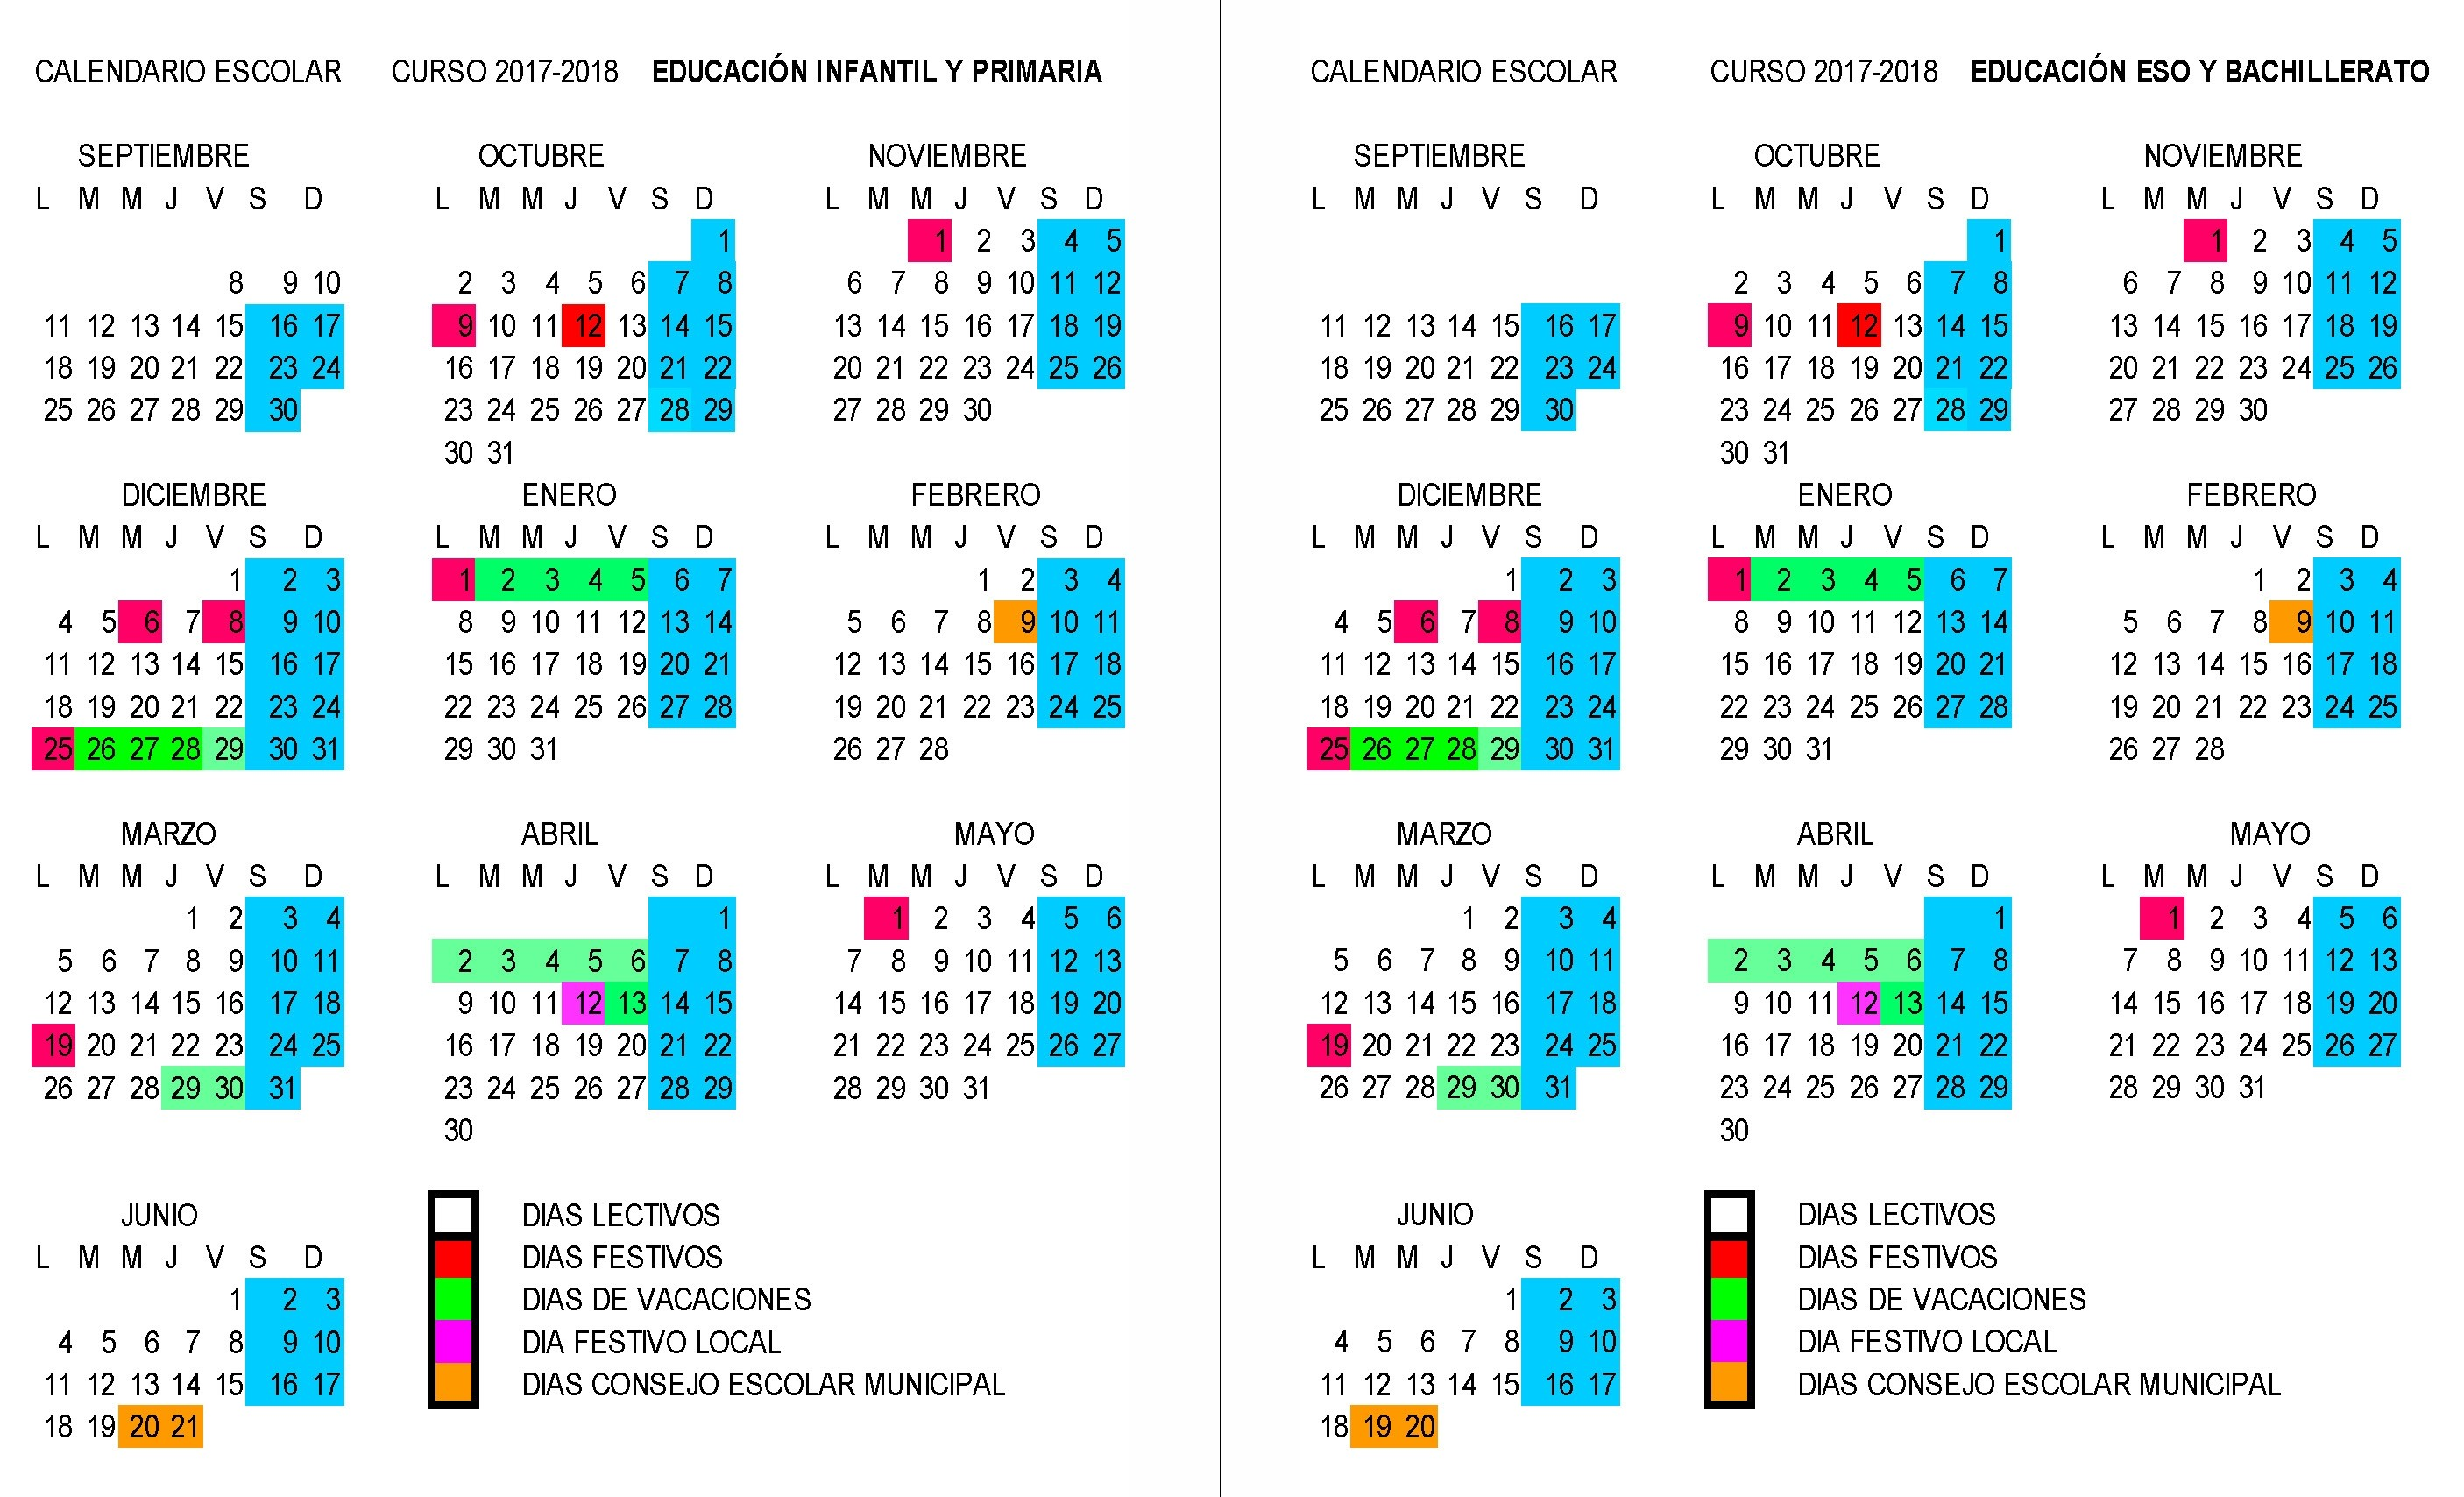 Calendario Escolar 2018 Y 2019 Sep Descargar Más Populares Calendario Laboral 2019 Gva Seonegativo Of Calendario Escolar 2018 Y 2019 Sep Descargar Más Populares Calendario Laboral 2019 Gva Seonegativo